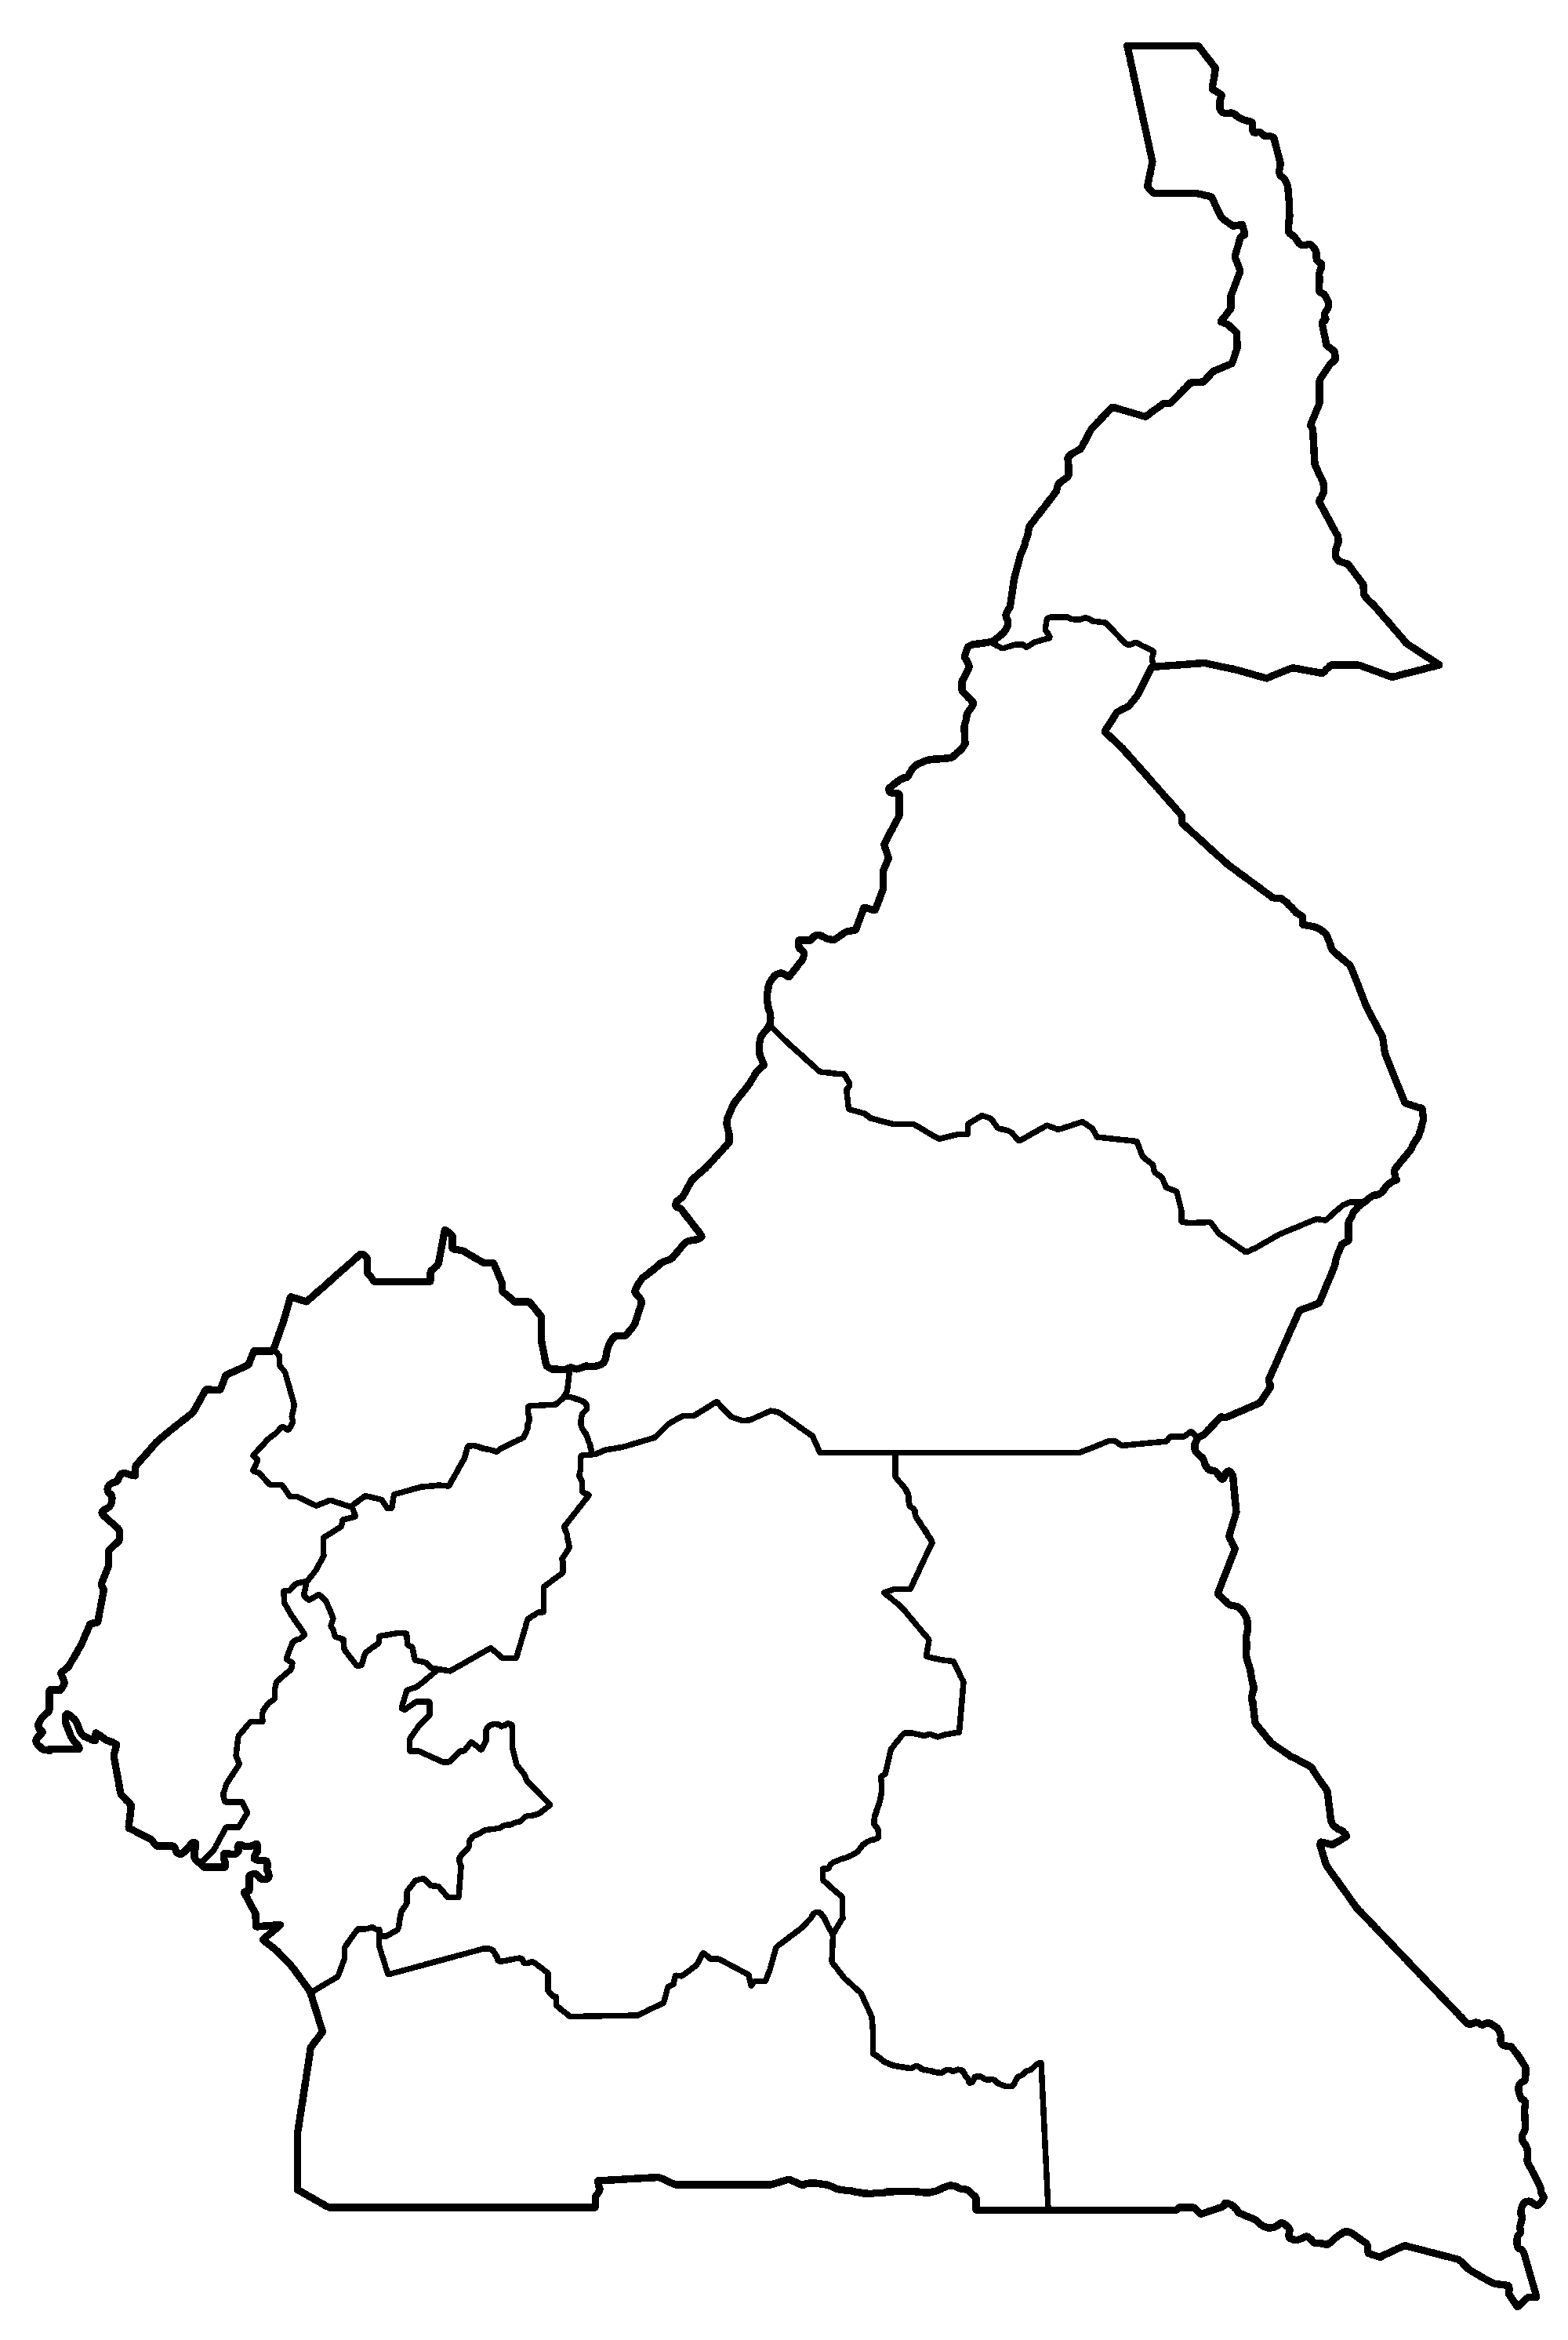 File:Cameroon provinces blank.png - Wikimedia Commons on blank map of turkey, blank map of latvia, blank map of comoros, blank map of burma, blank map of commonwealth of independent states, blank map of asia region, blank map of indian ocean islands, blank map of the czech republic, blank map of gabon, blank map of rodrigues, blank map of u.s.a, blank map of africa, blank map of sudan, blank map of philippines, blank map of us virgin islands, blank map of western sahara, blank map of tortola, blank map of eritrea, blank map of st martin, blank map of palau,